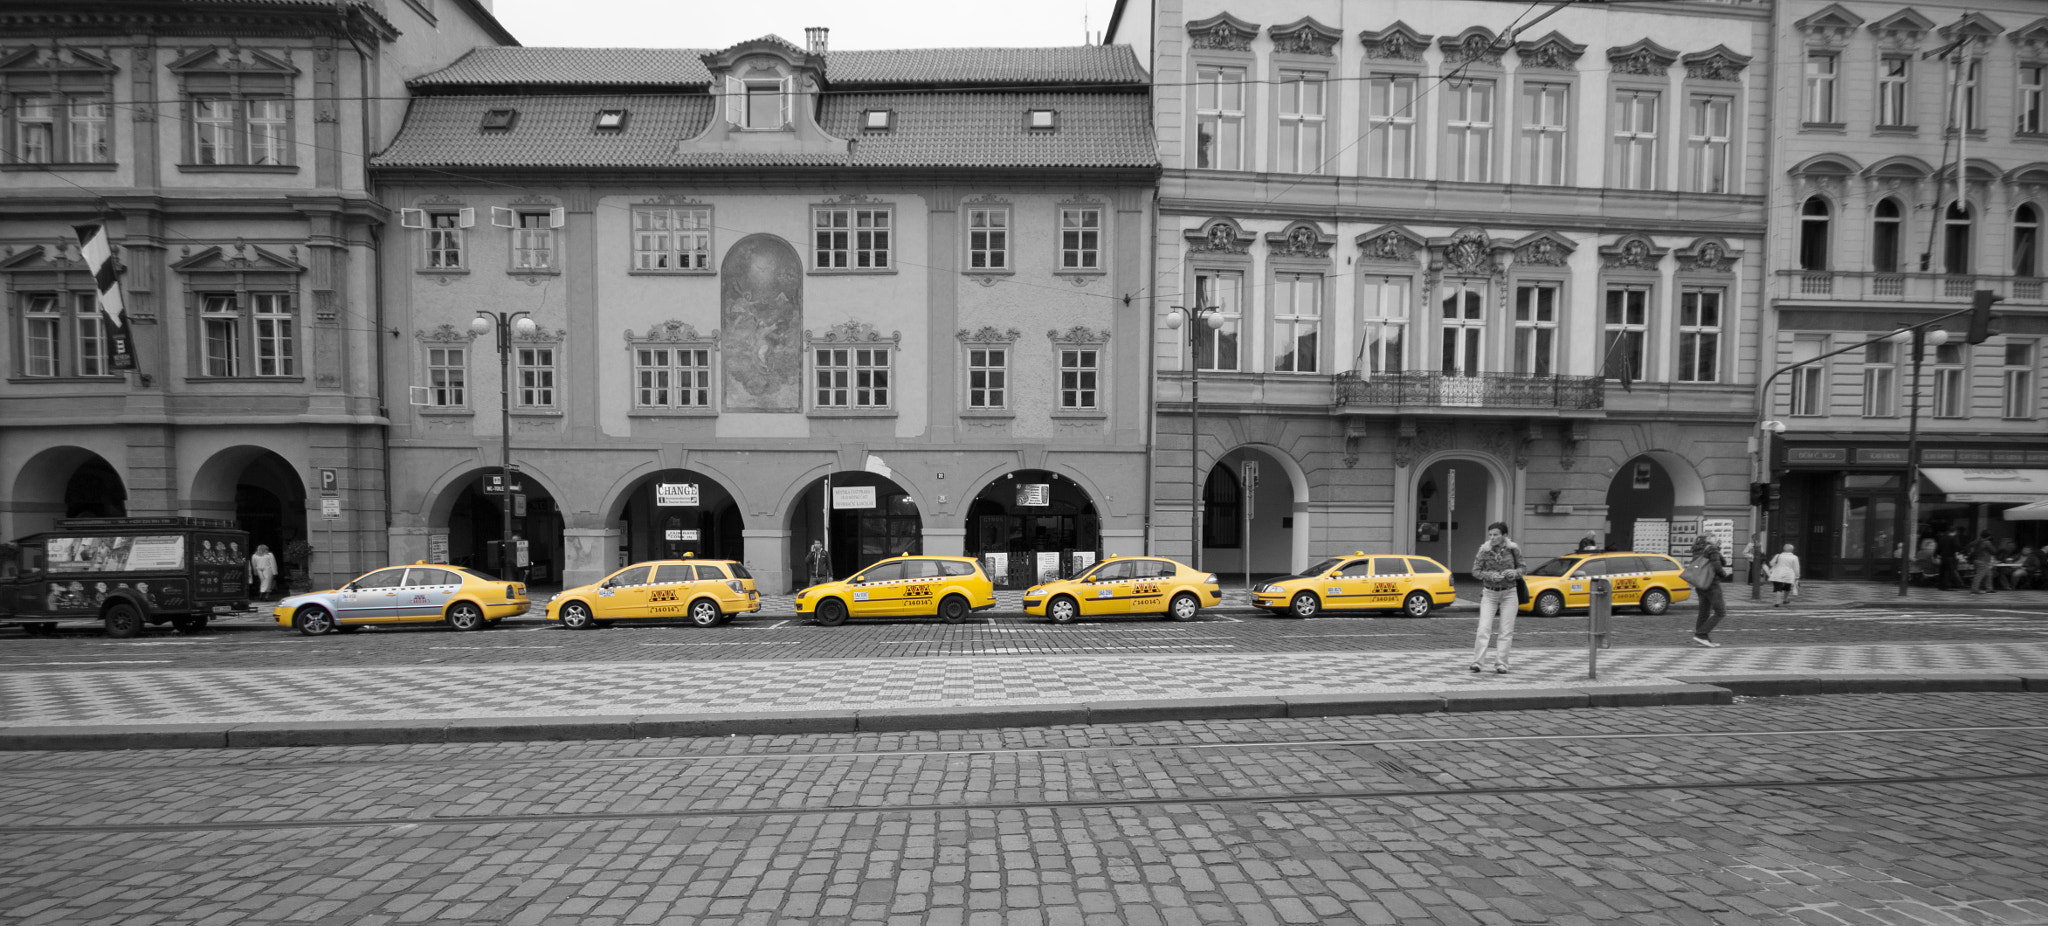 Photograph Taxi, Taxi. by Jan-Philipp Nack on 500px